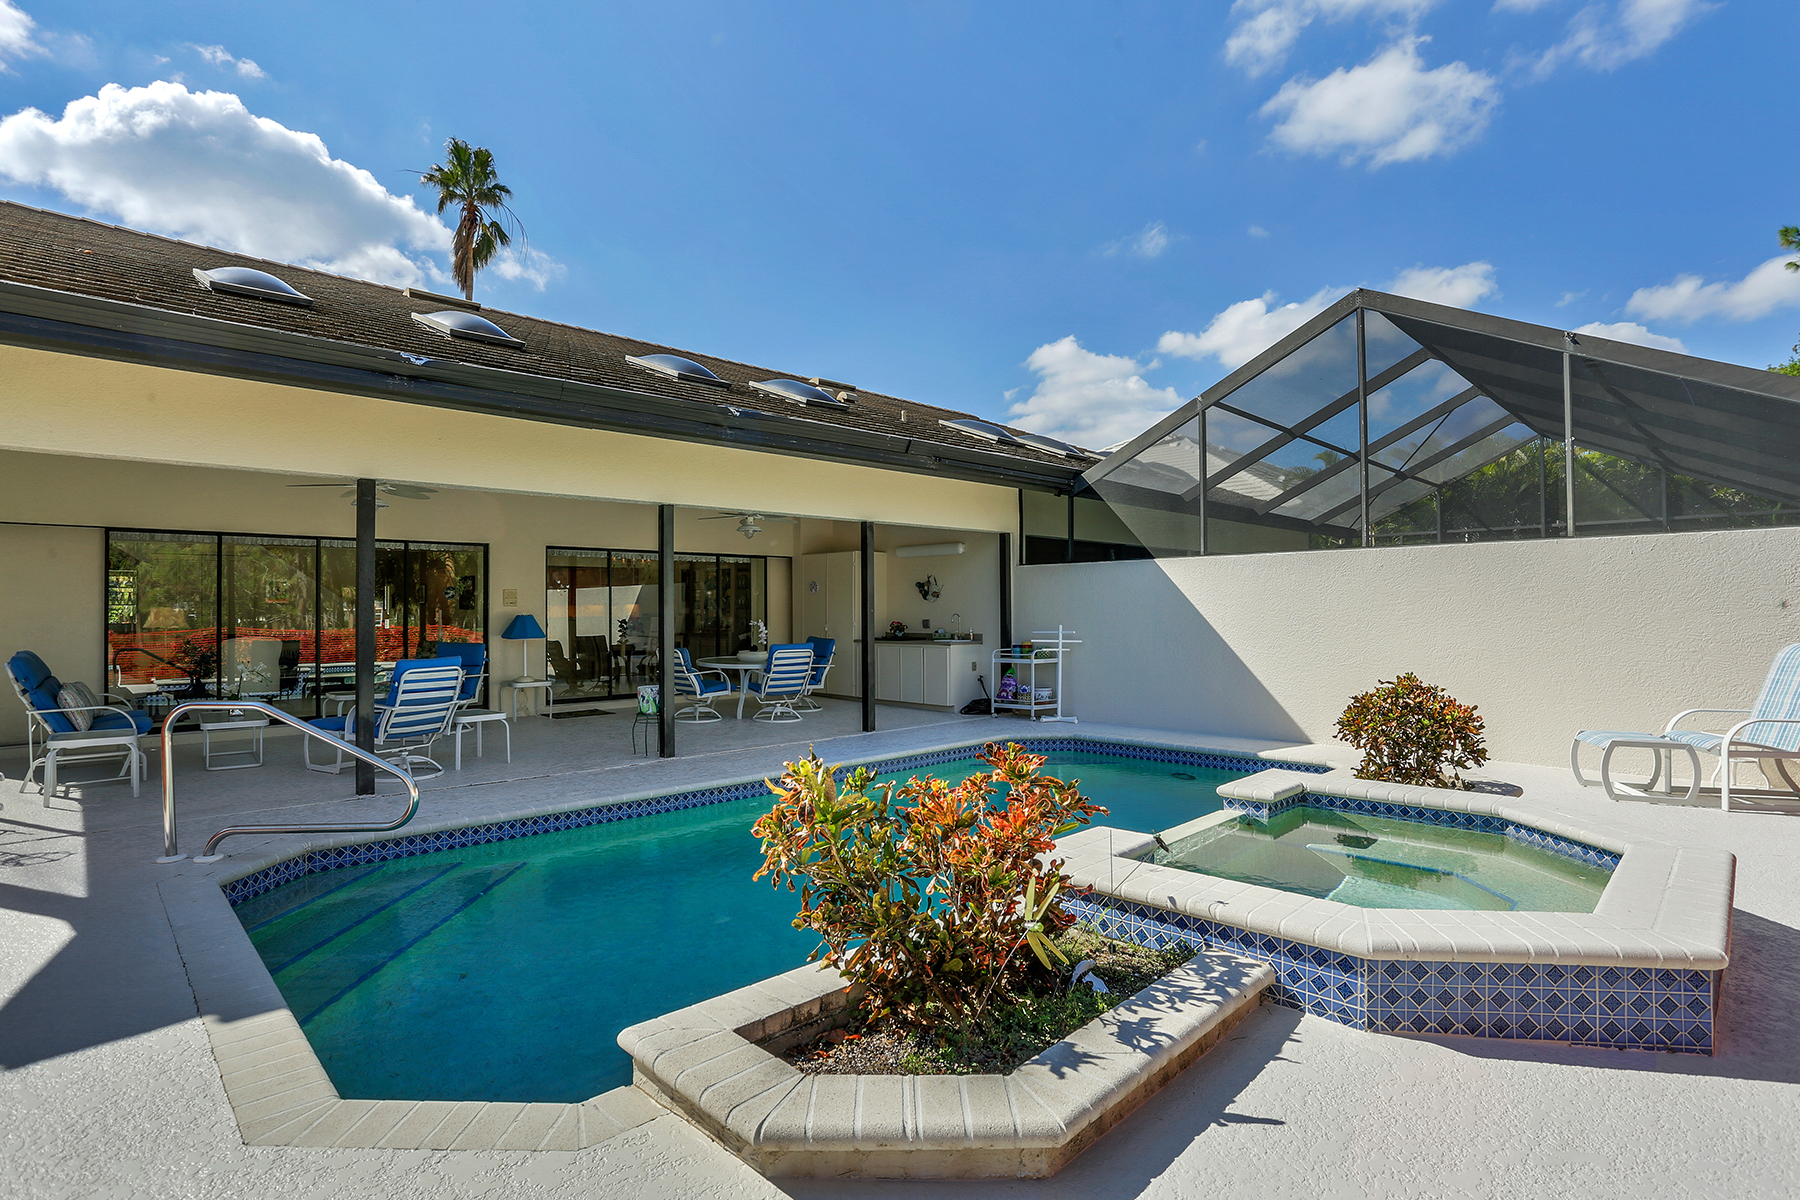 Single Family Home for Sale at EAGLE CREEK 140 Cypress View Dr, Naples, Florida 34113 United States